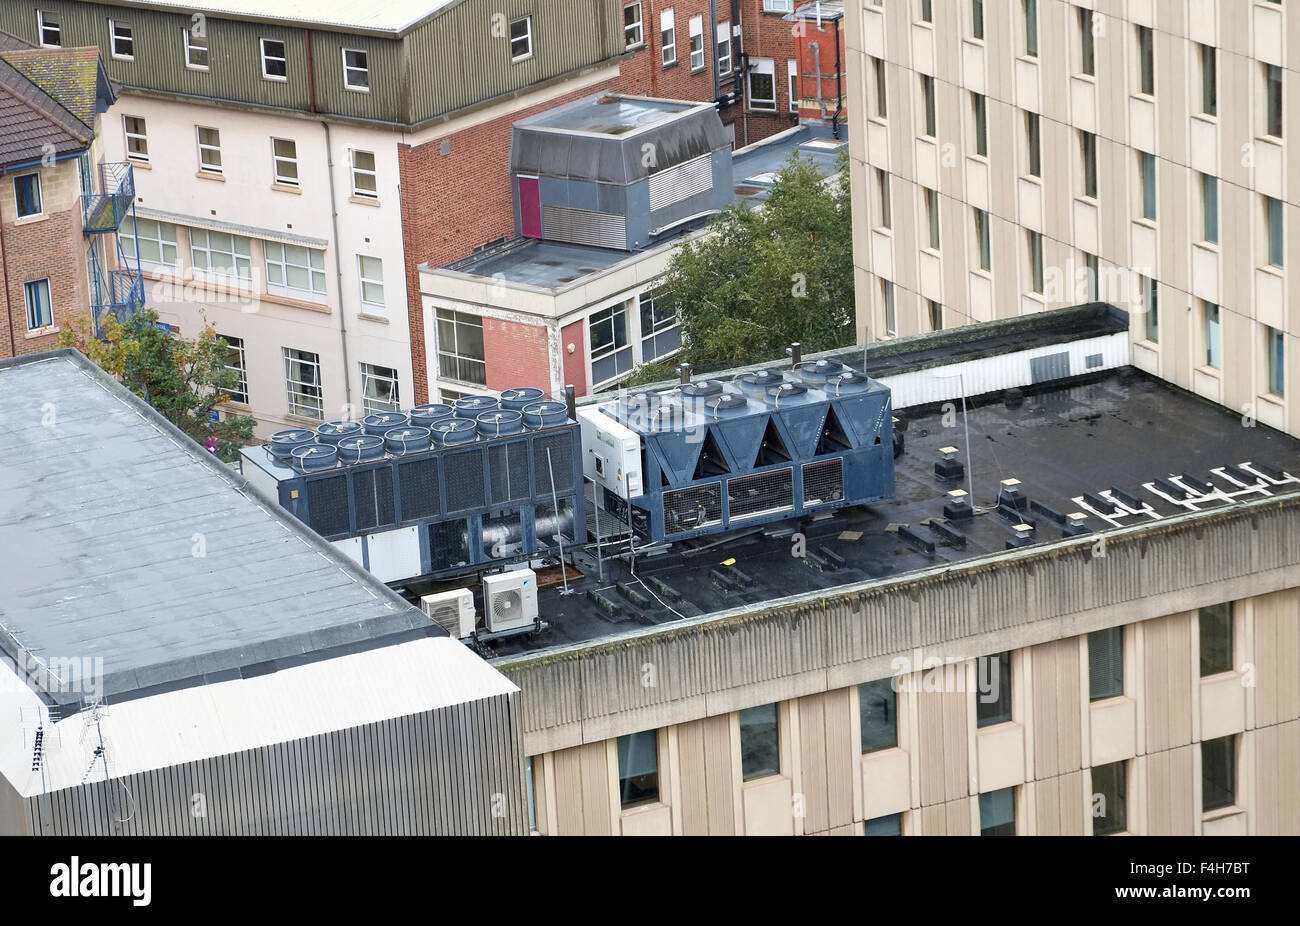 office block with old style air conditioning units air handling